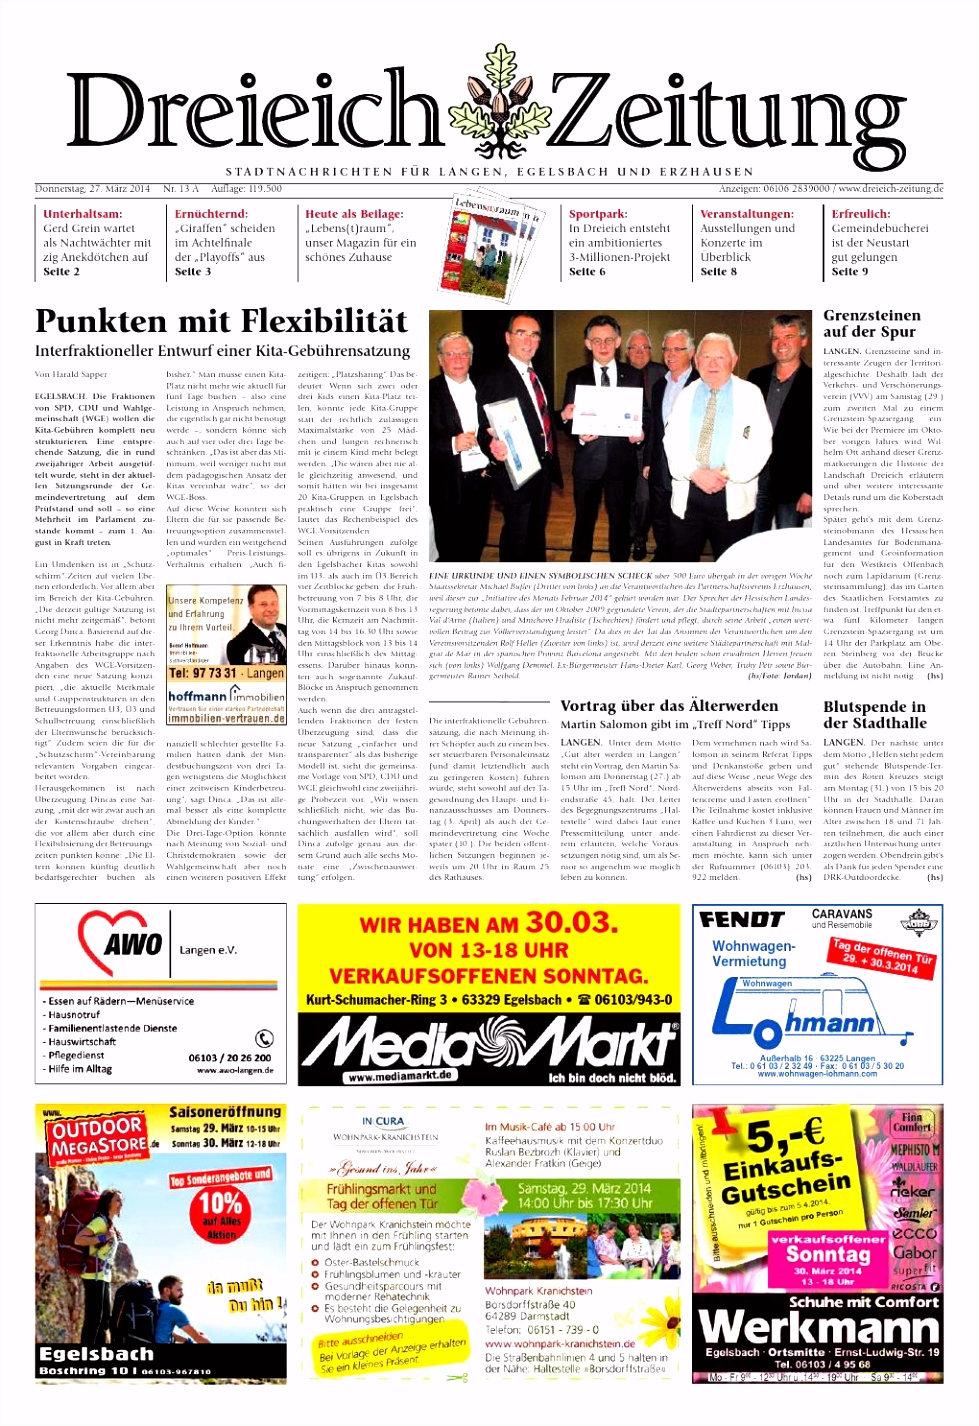 Dz online 013 14 a by Dreieich Zeitung fenbach Journal issuu